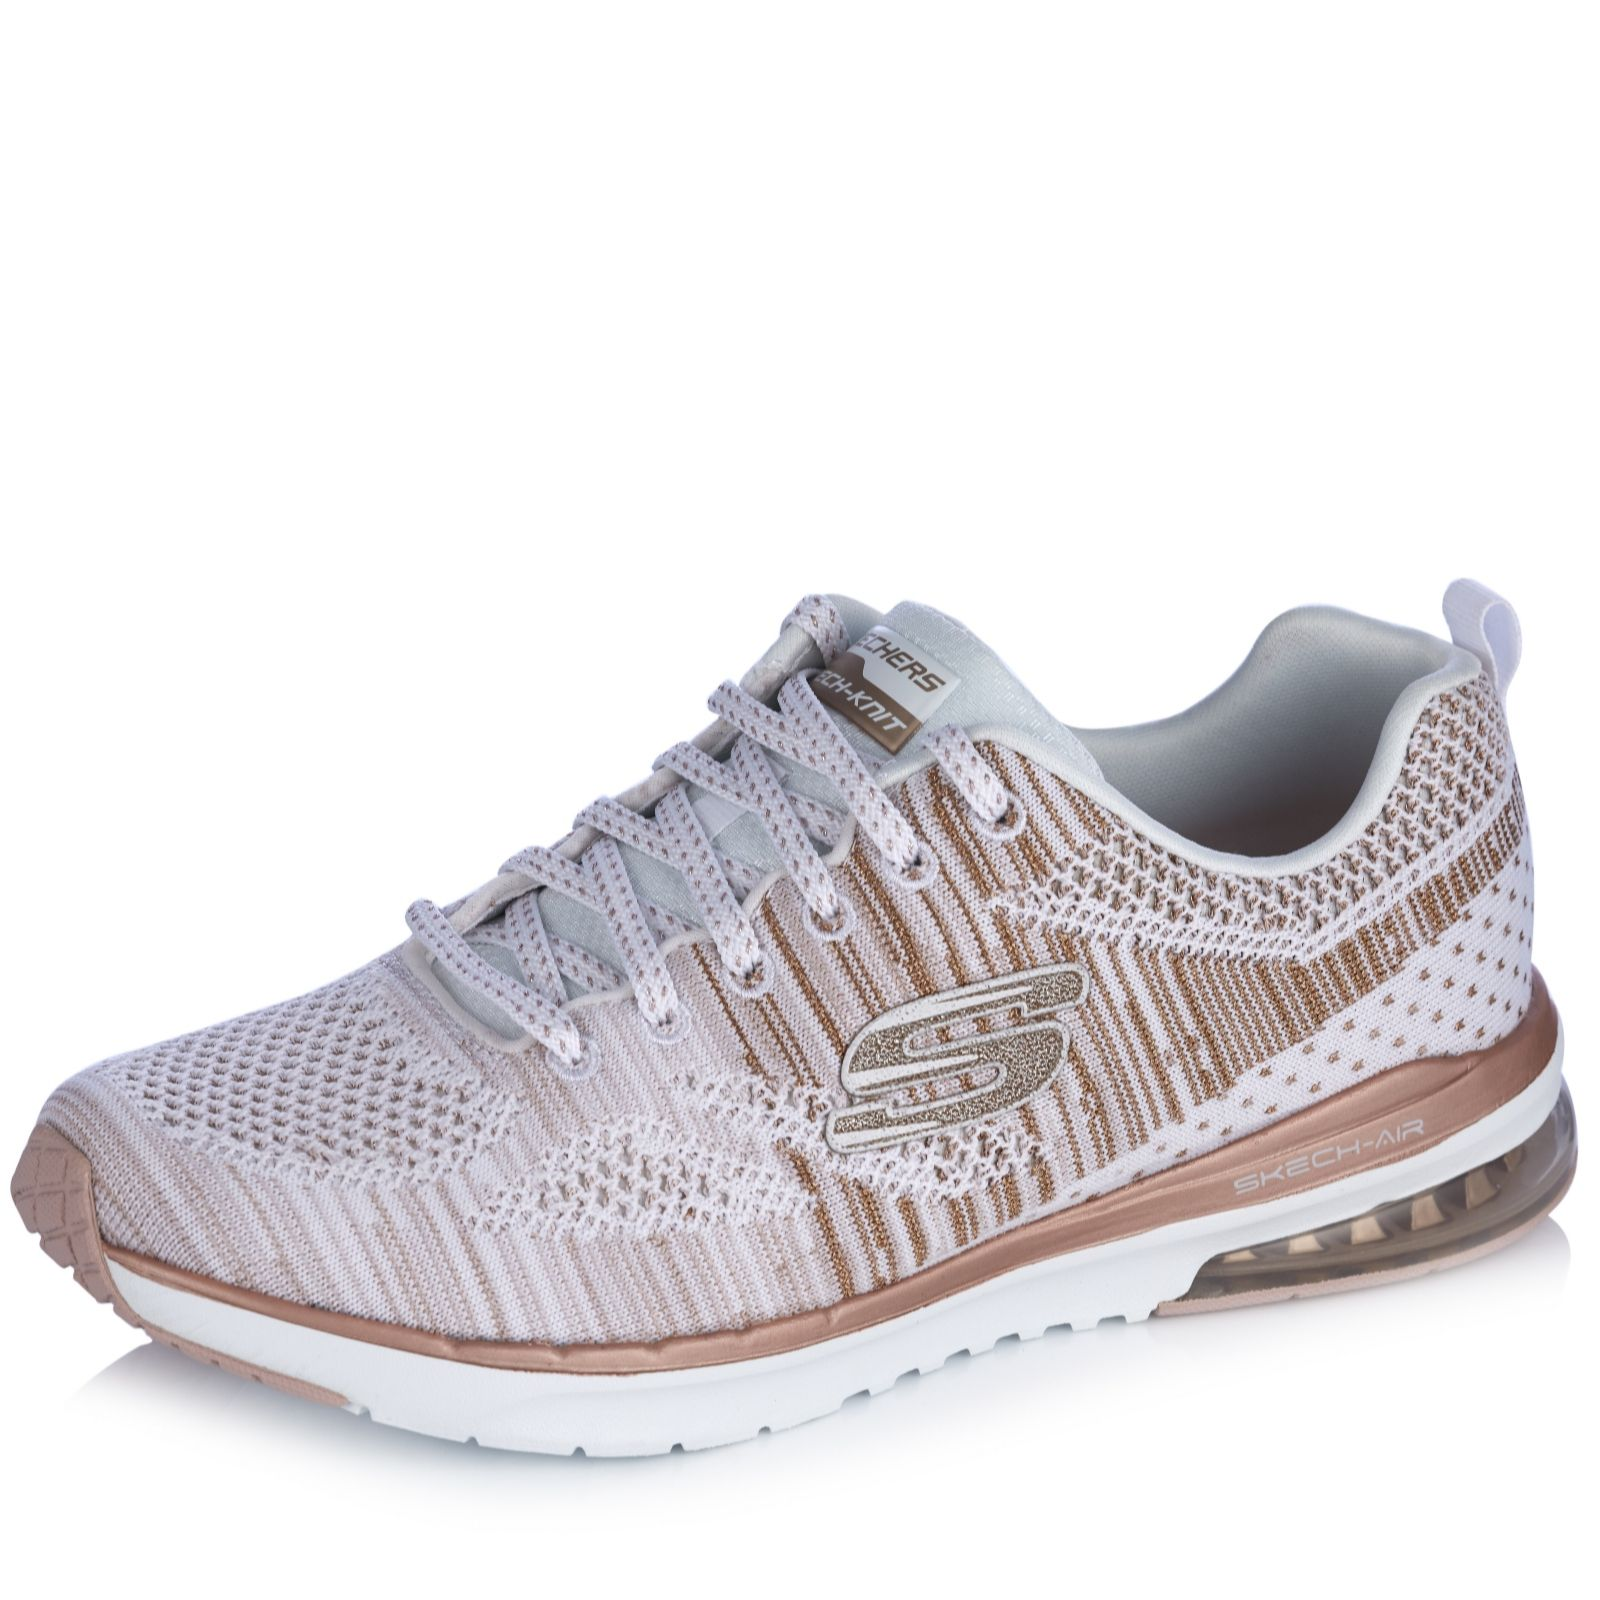 30128294af4a Skechers Air Infinity Stand Out Flat Knit Lace Up Trainer - QVC UK